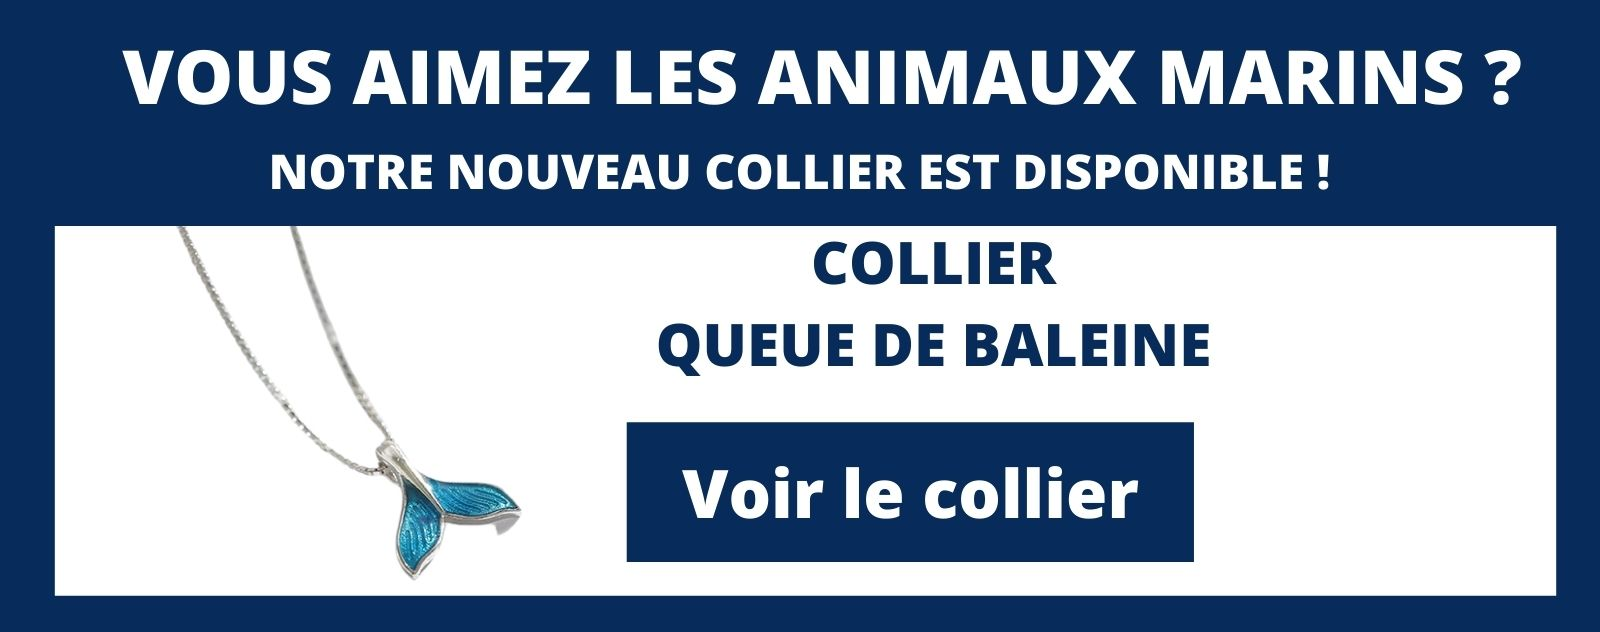 collier queue de baleine